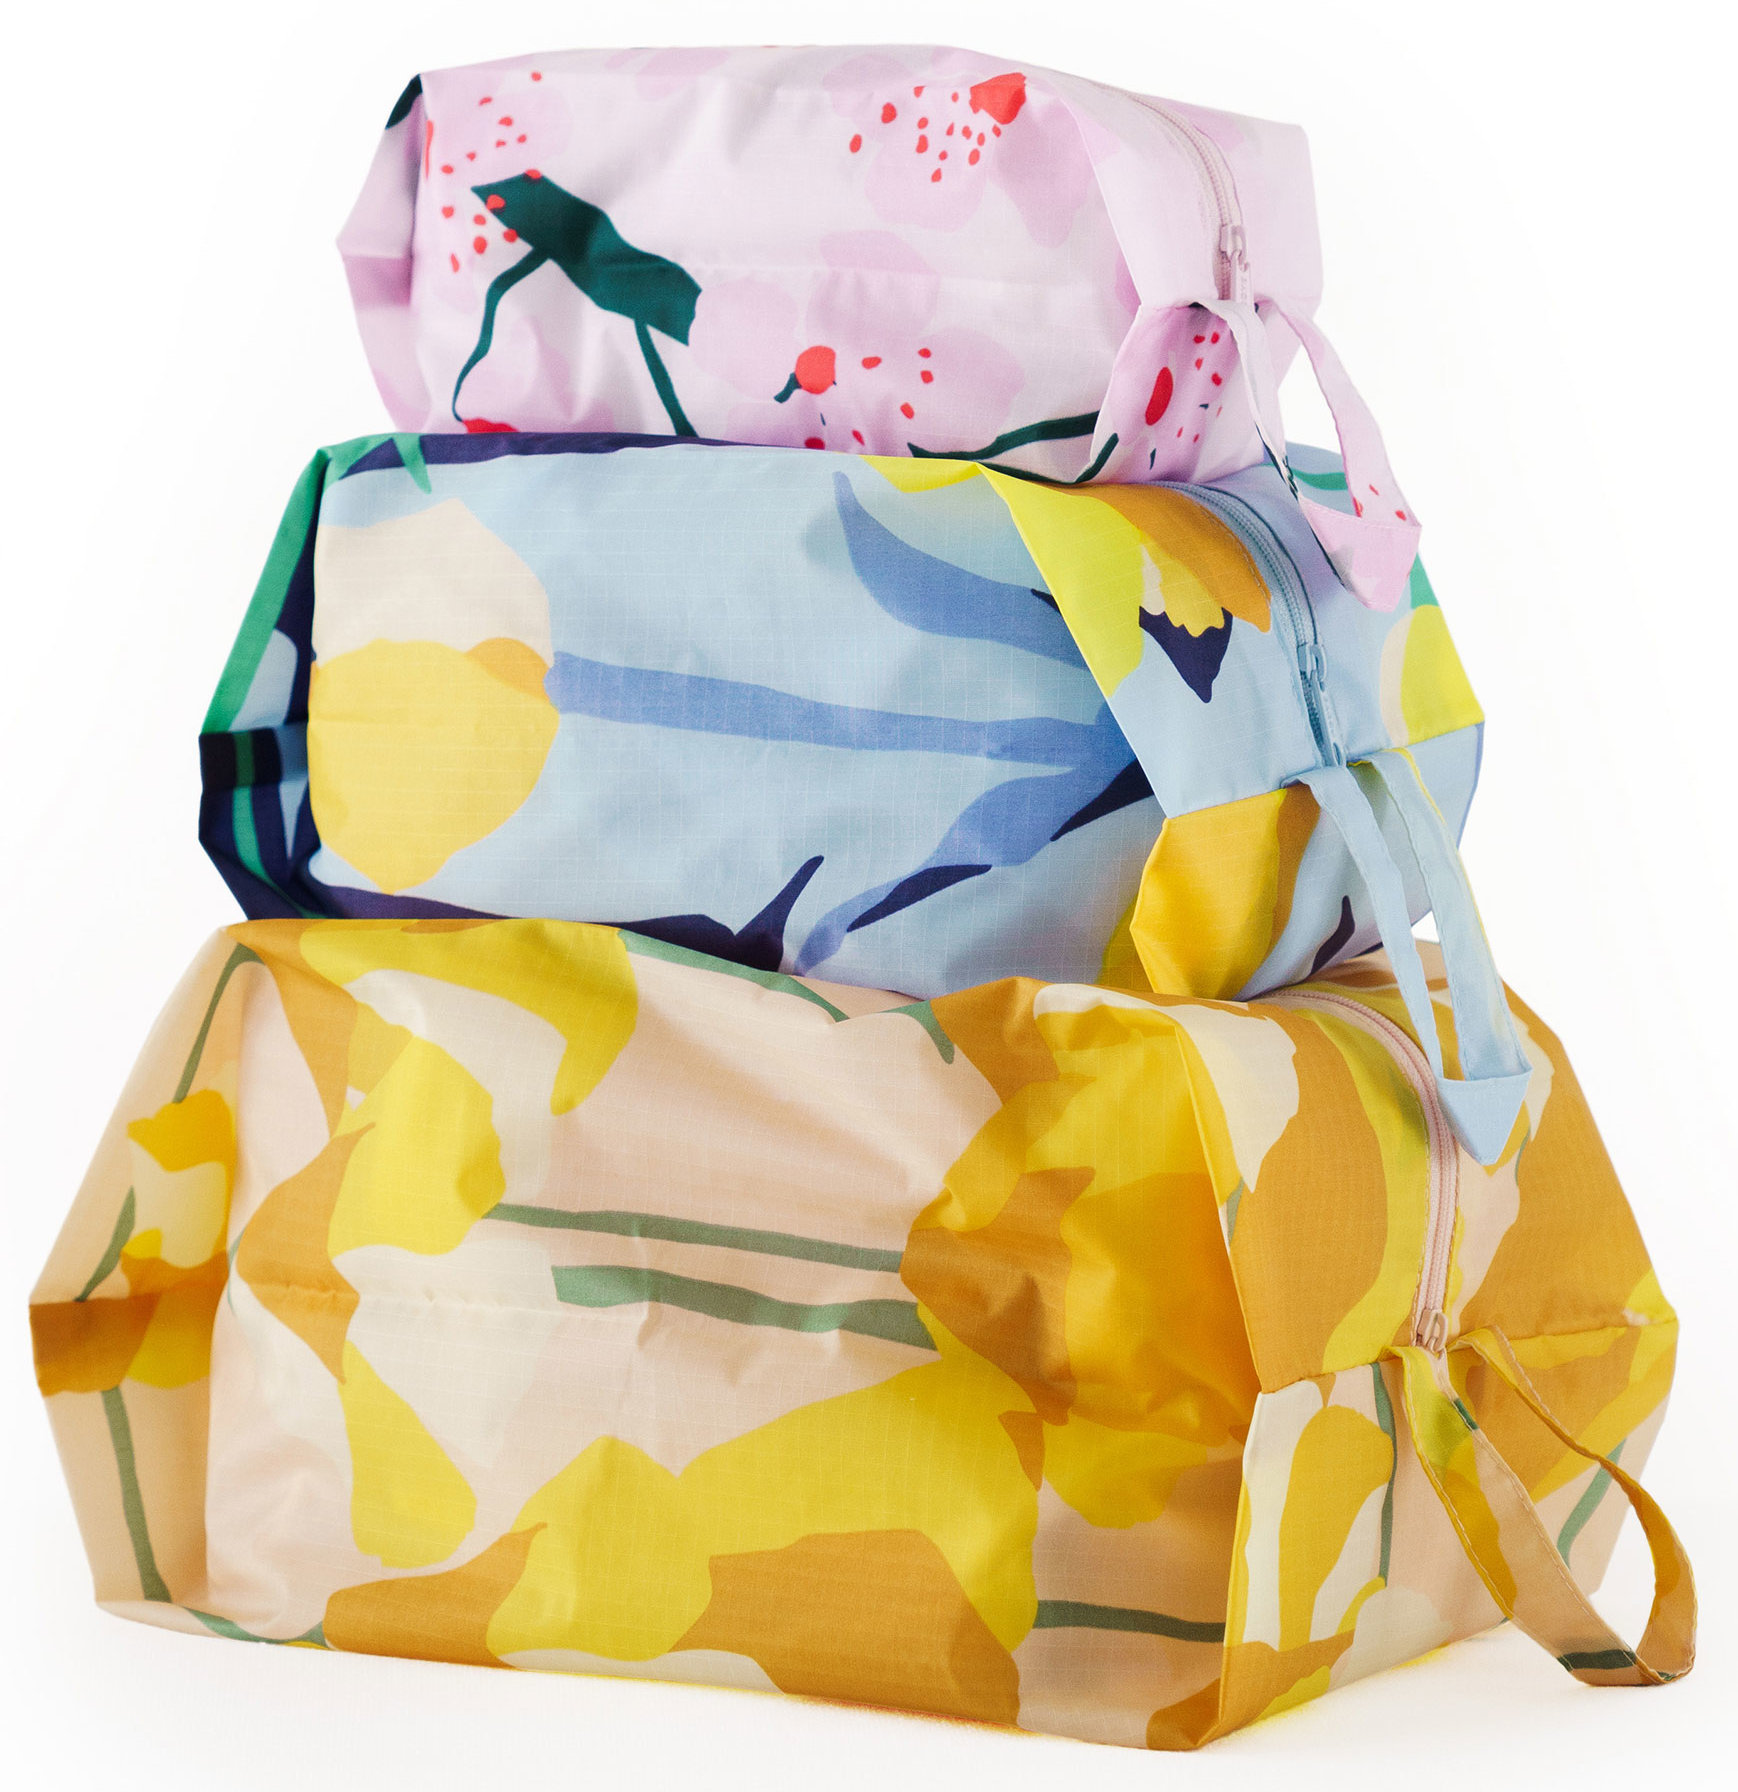 Mother's Day gifts: recycled-nylon bags